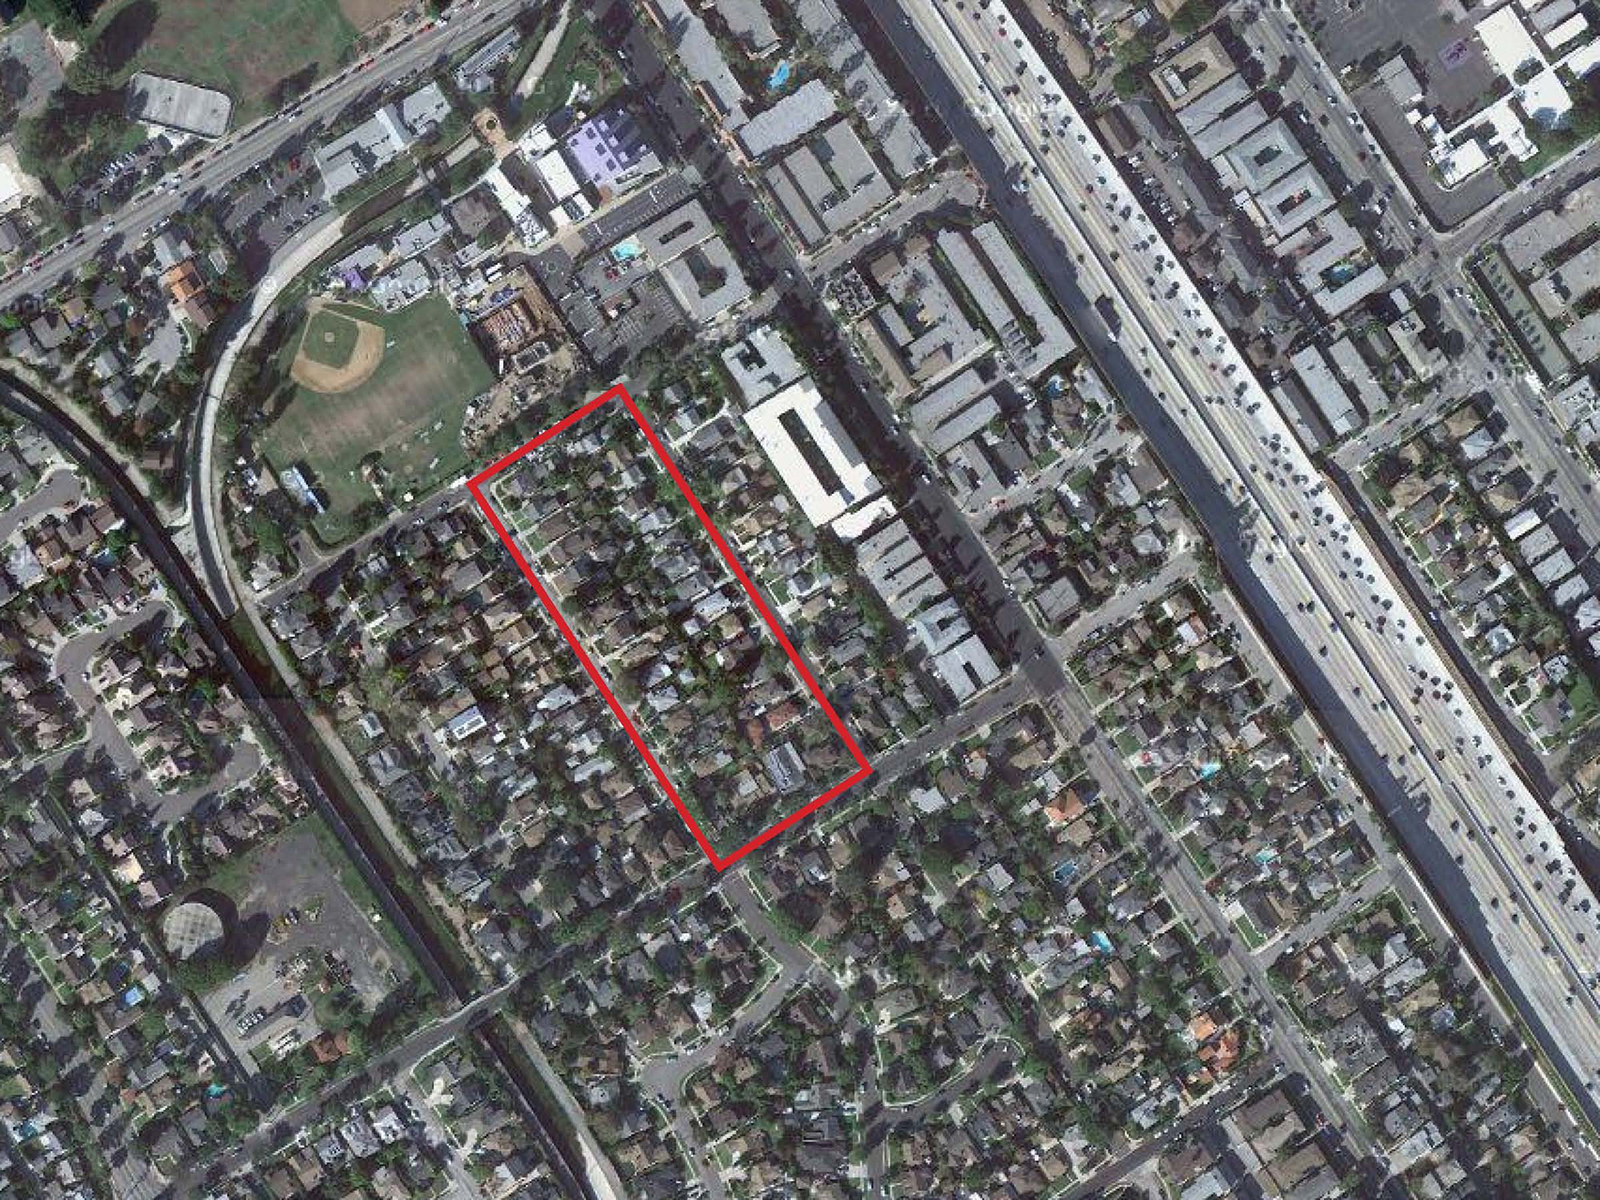 This study begins with the investigation of a typical Los Angeles city block.